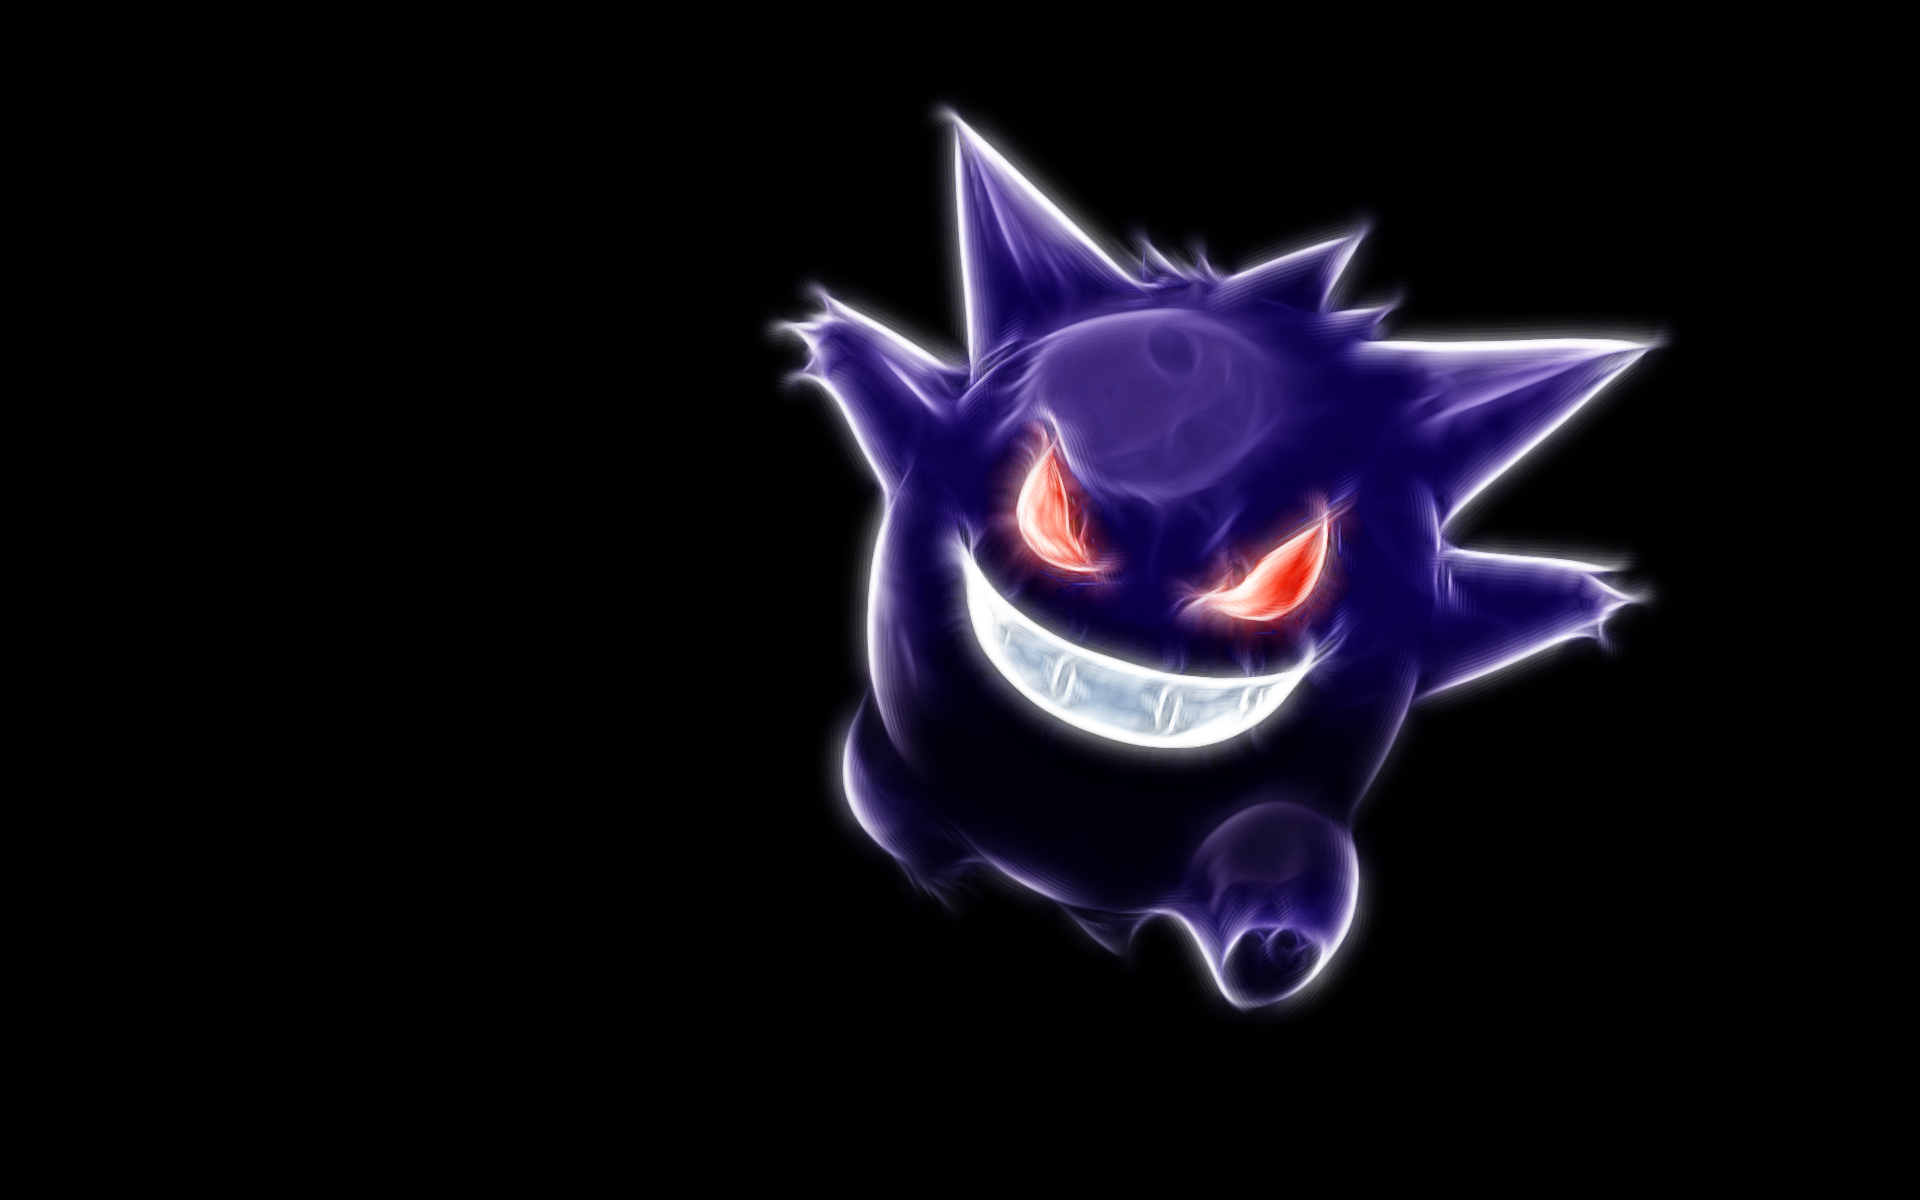 gengar wallpaper by phase one on deviantart